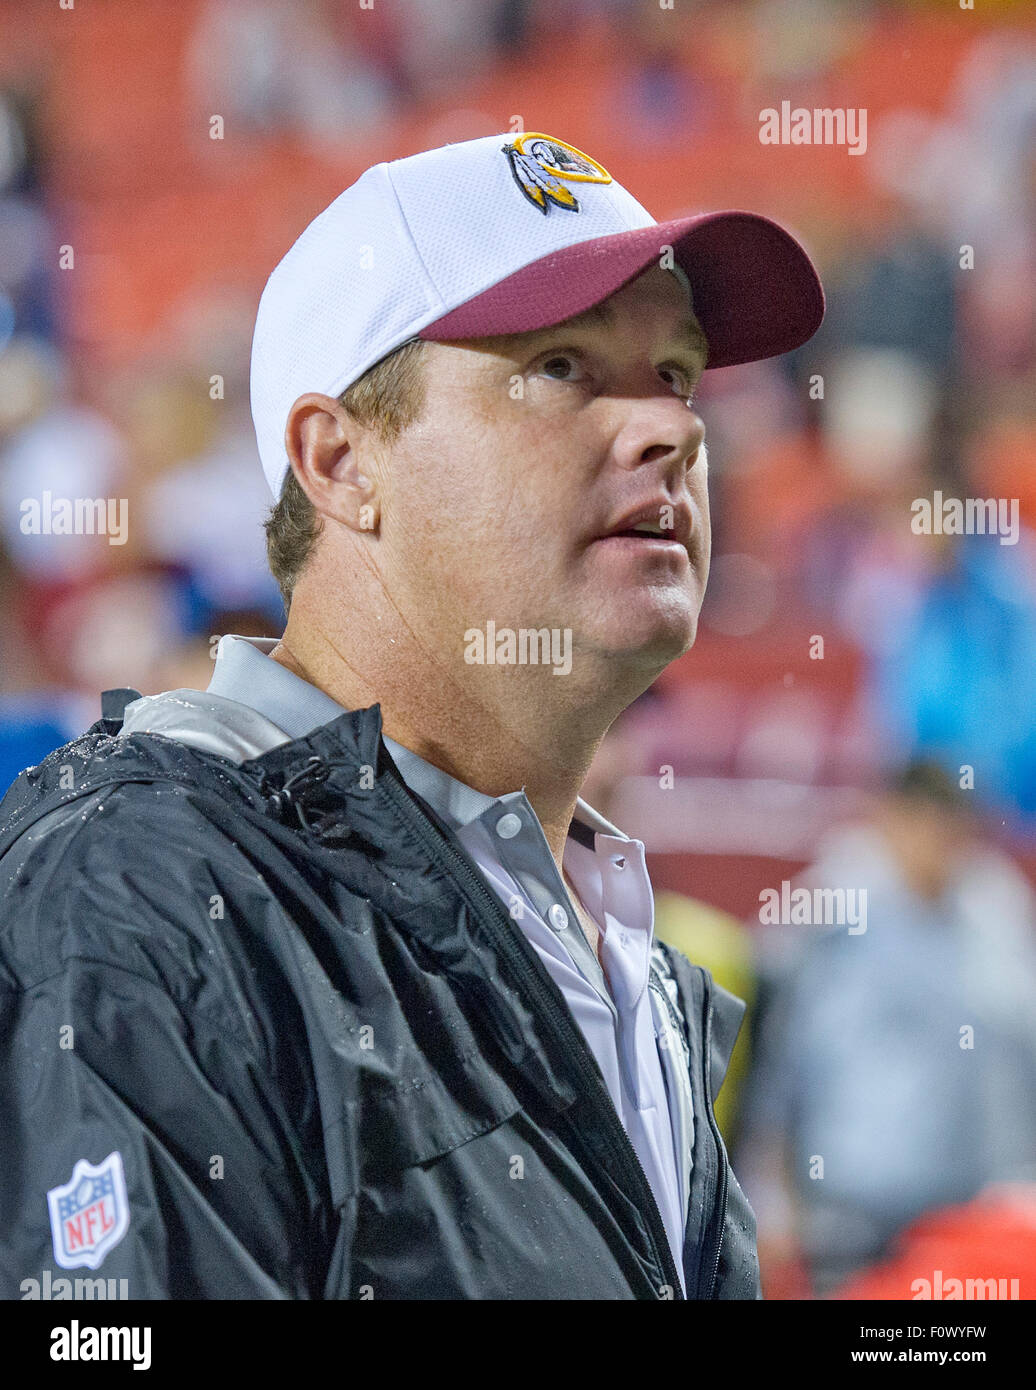 bfc4aa8b1 Washington Redskins head coach Jay Gruden leaves the field following his  team s 21 - 17 victory